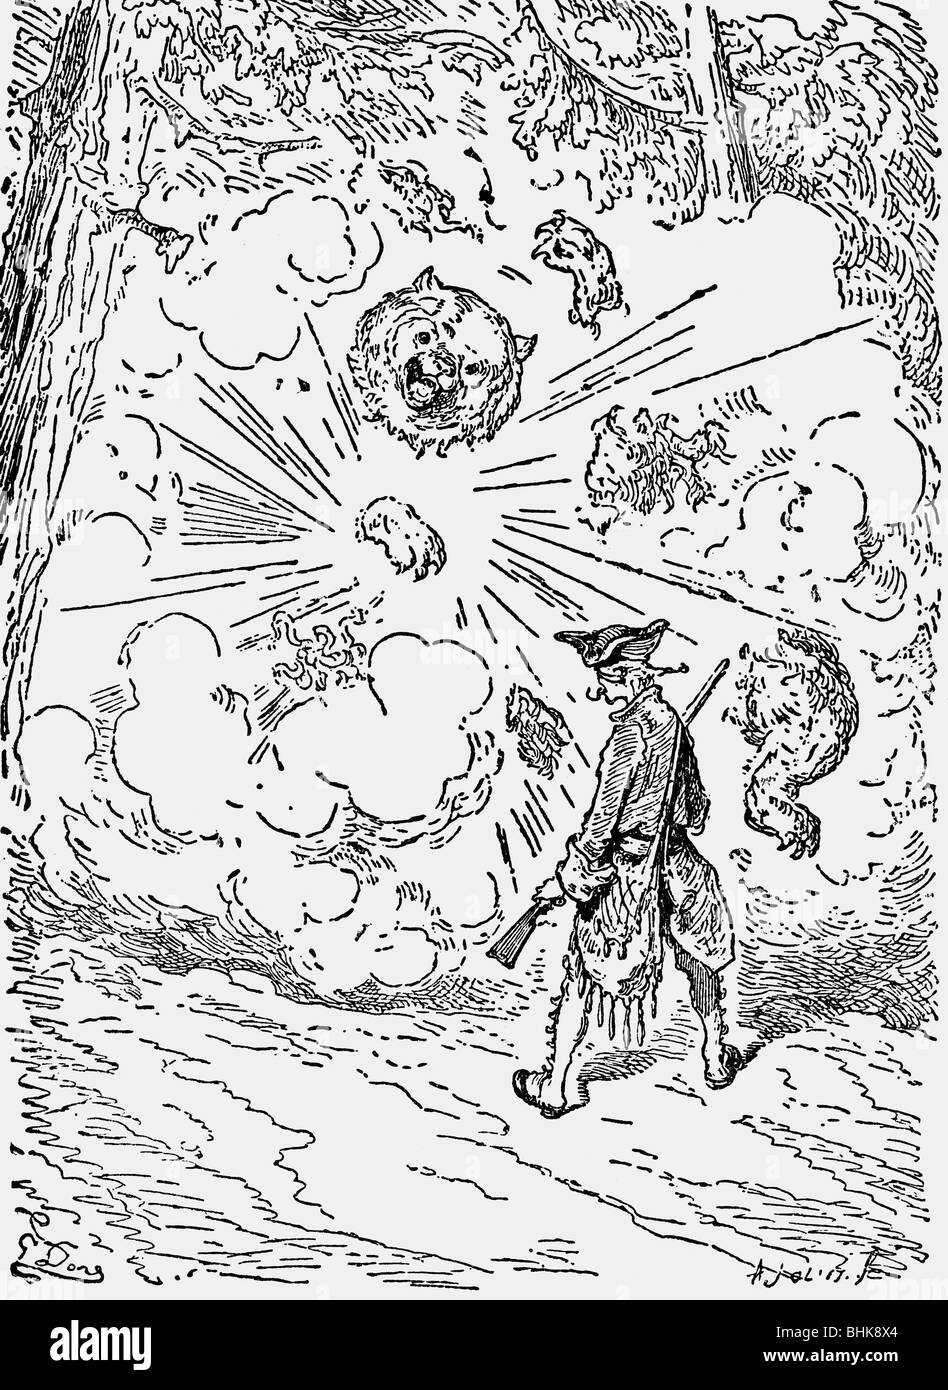 Munchhausen, Karl Friedrich Hieronymus von, 11.5.1720 - 22.2.1797, German officer, adventures, the exploding bear, - Stock Image